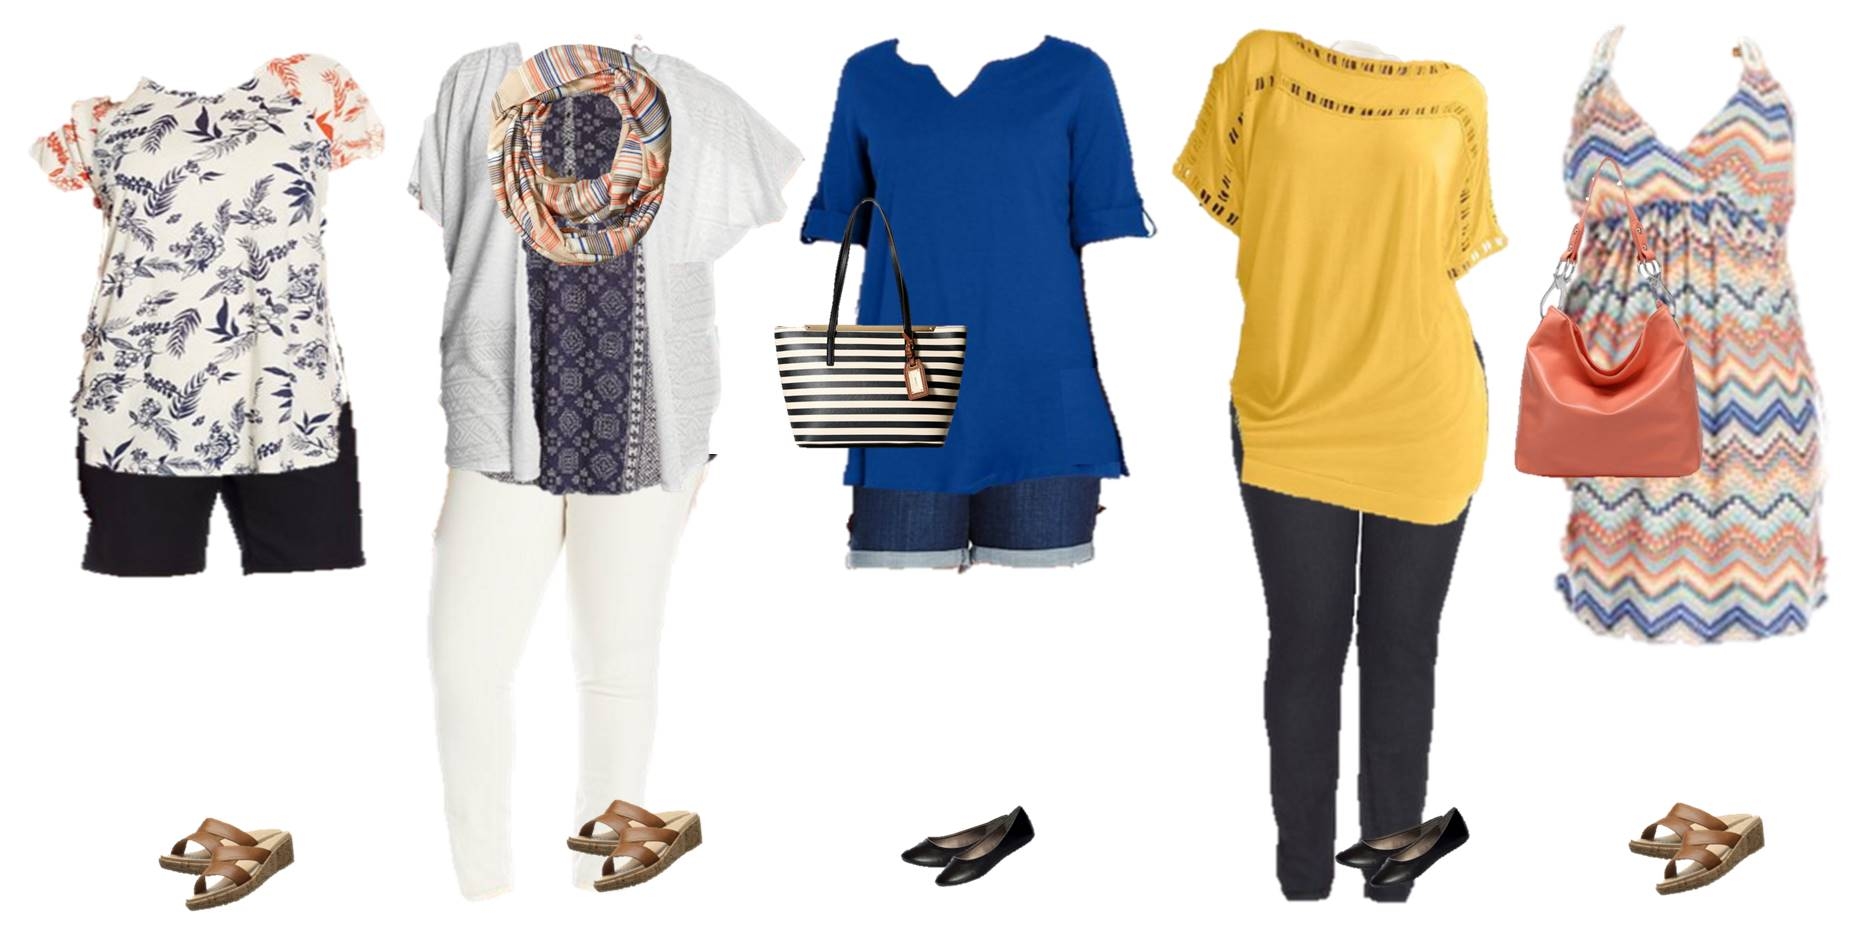 Women's Mix & Match Plus Size Summer Styles from Amazon